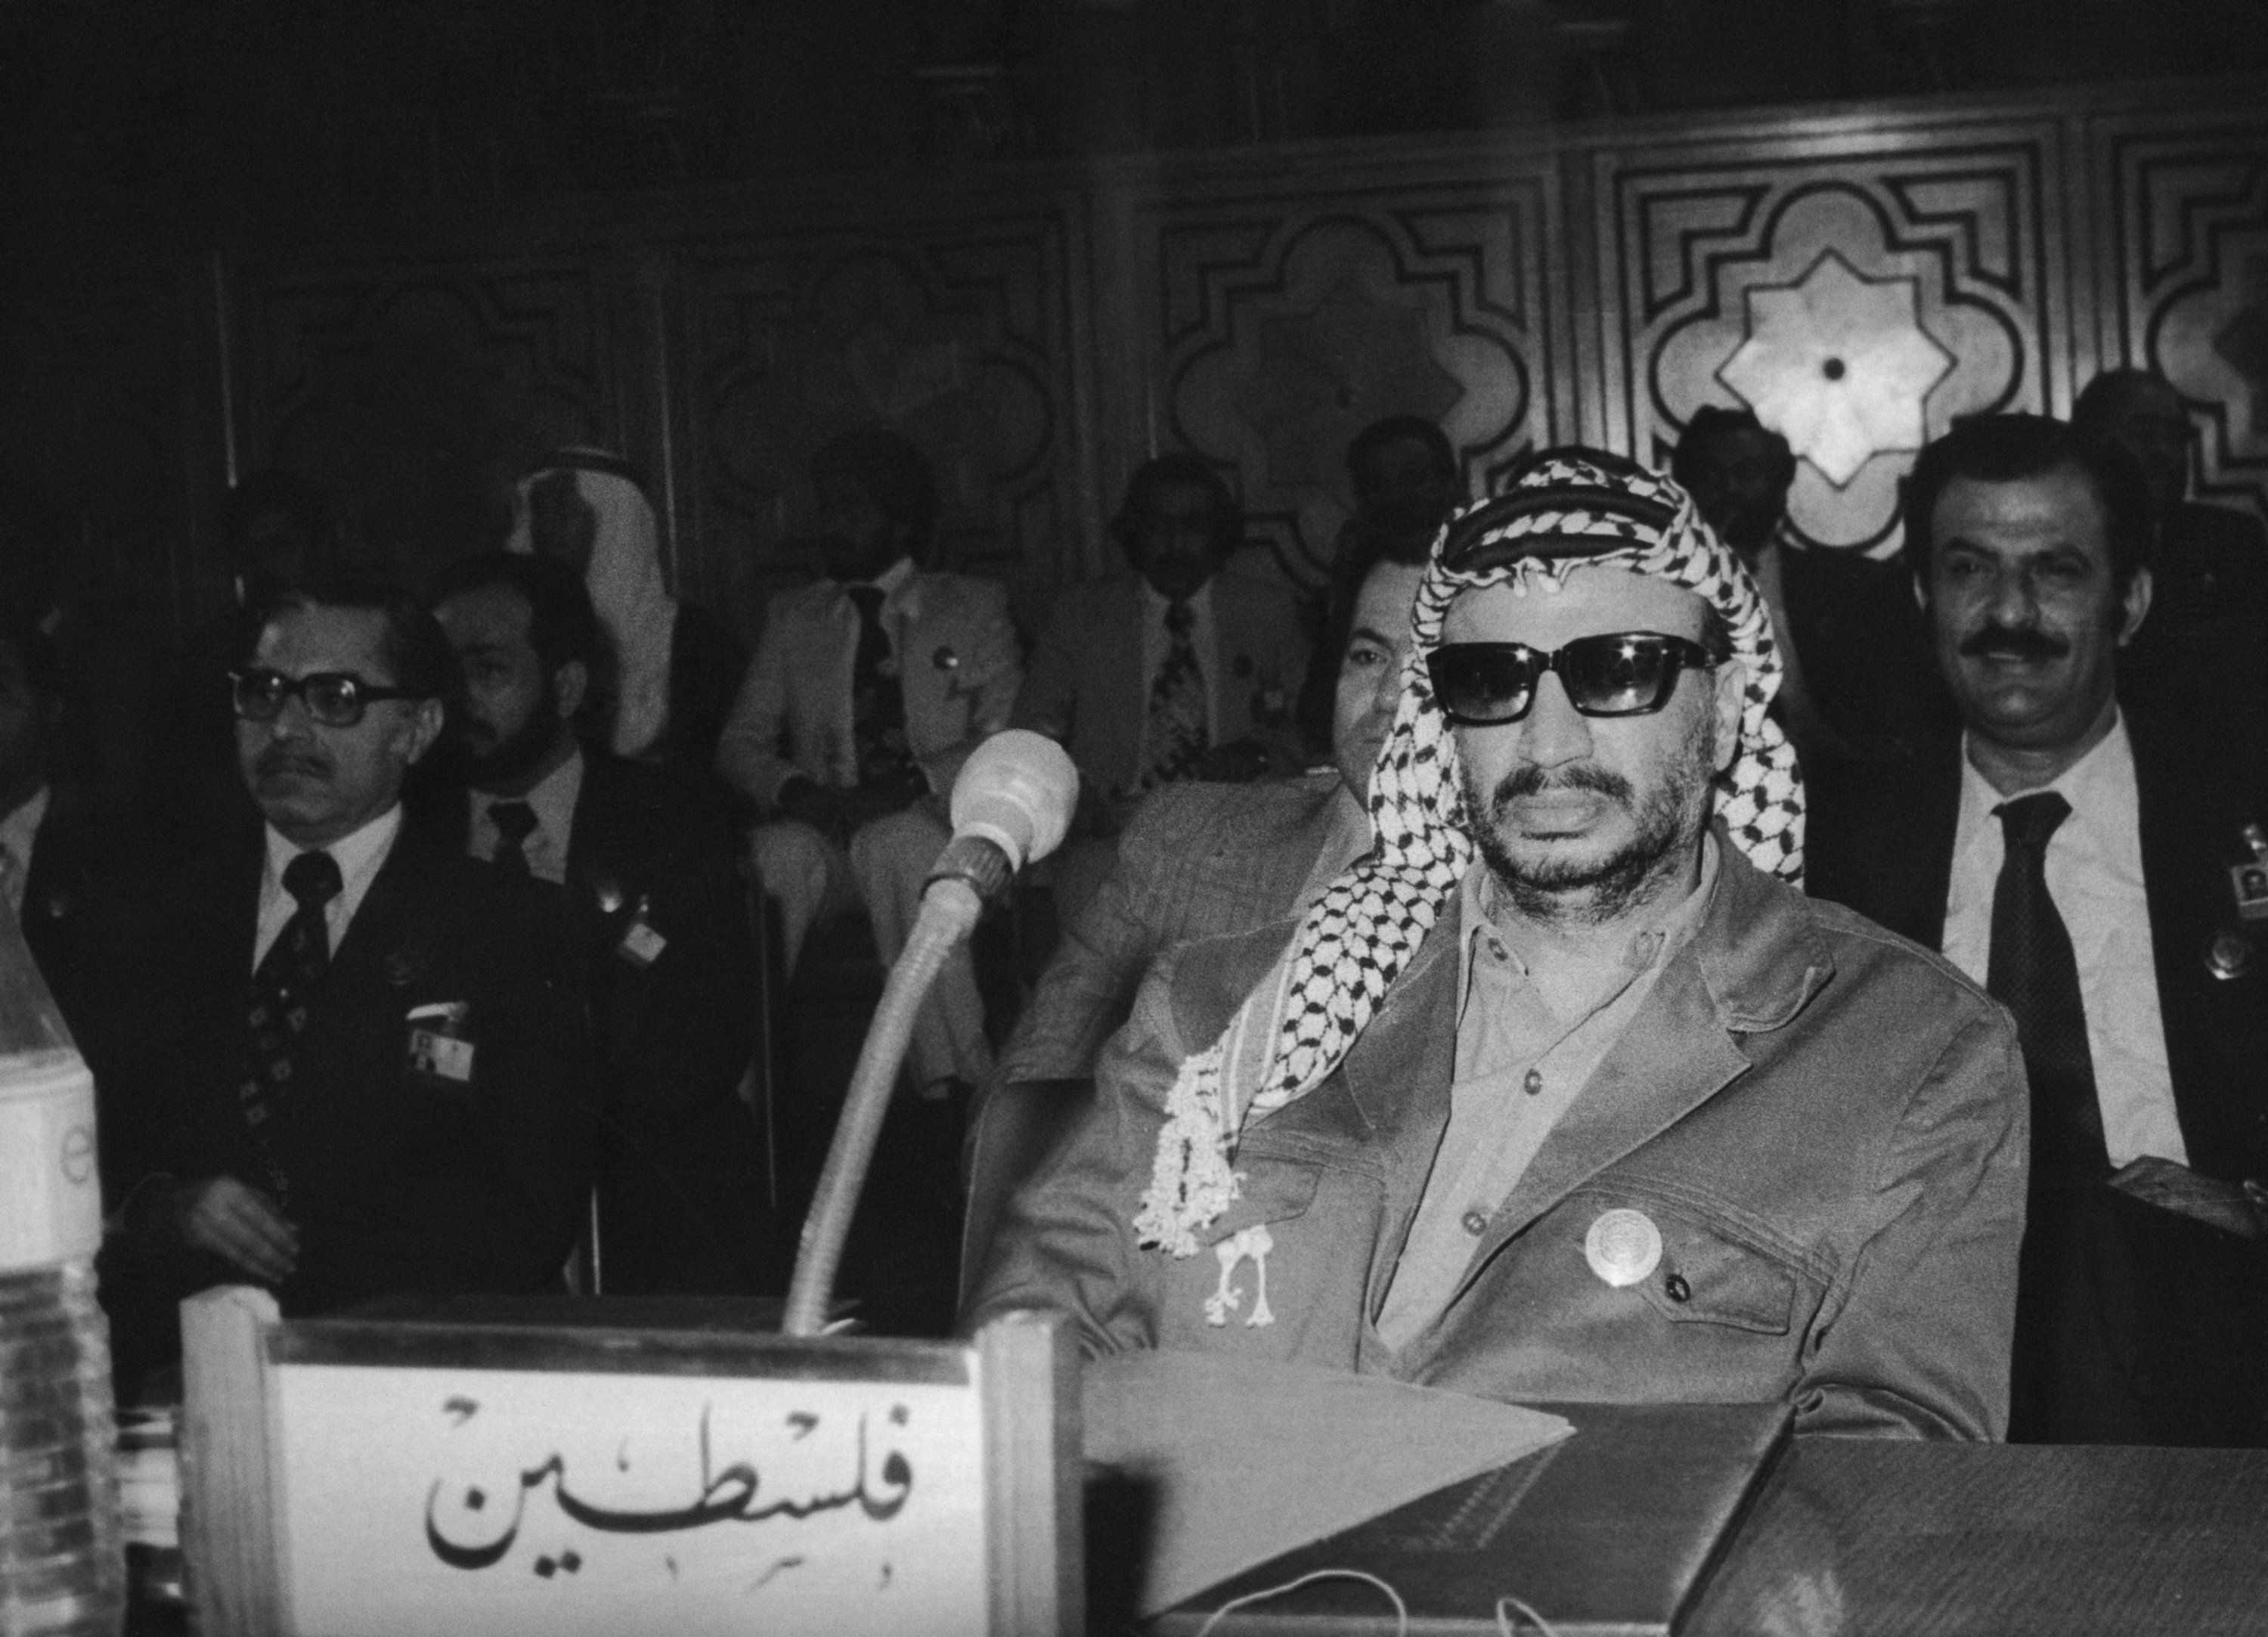 Palestinian political leader Yasser Arafat attends the inaugural session of the 12th Arab summit in Cairo, Eygpt, Oct. 25, 1976. (Photo by Getty Images)